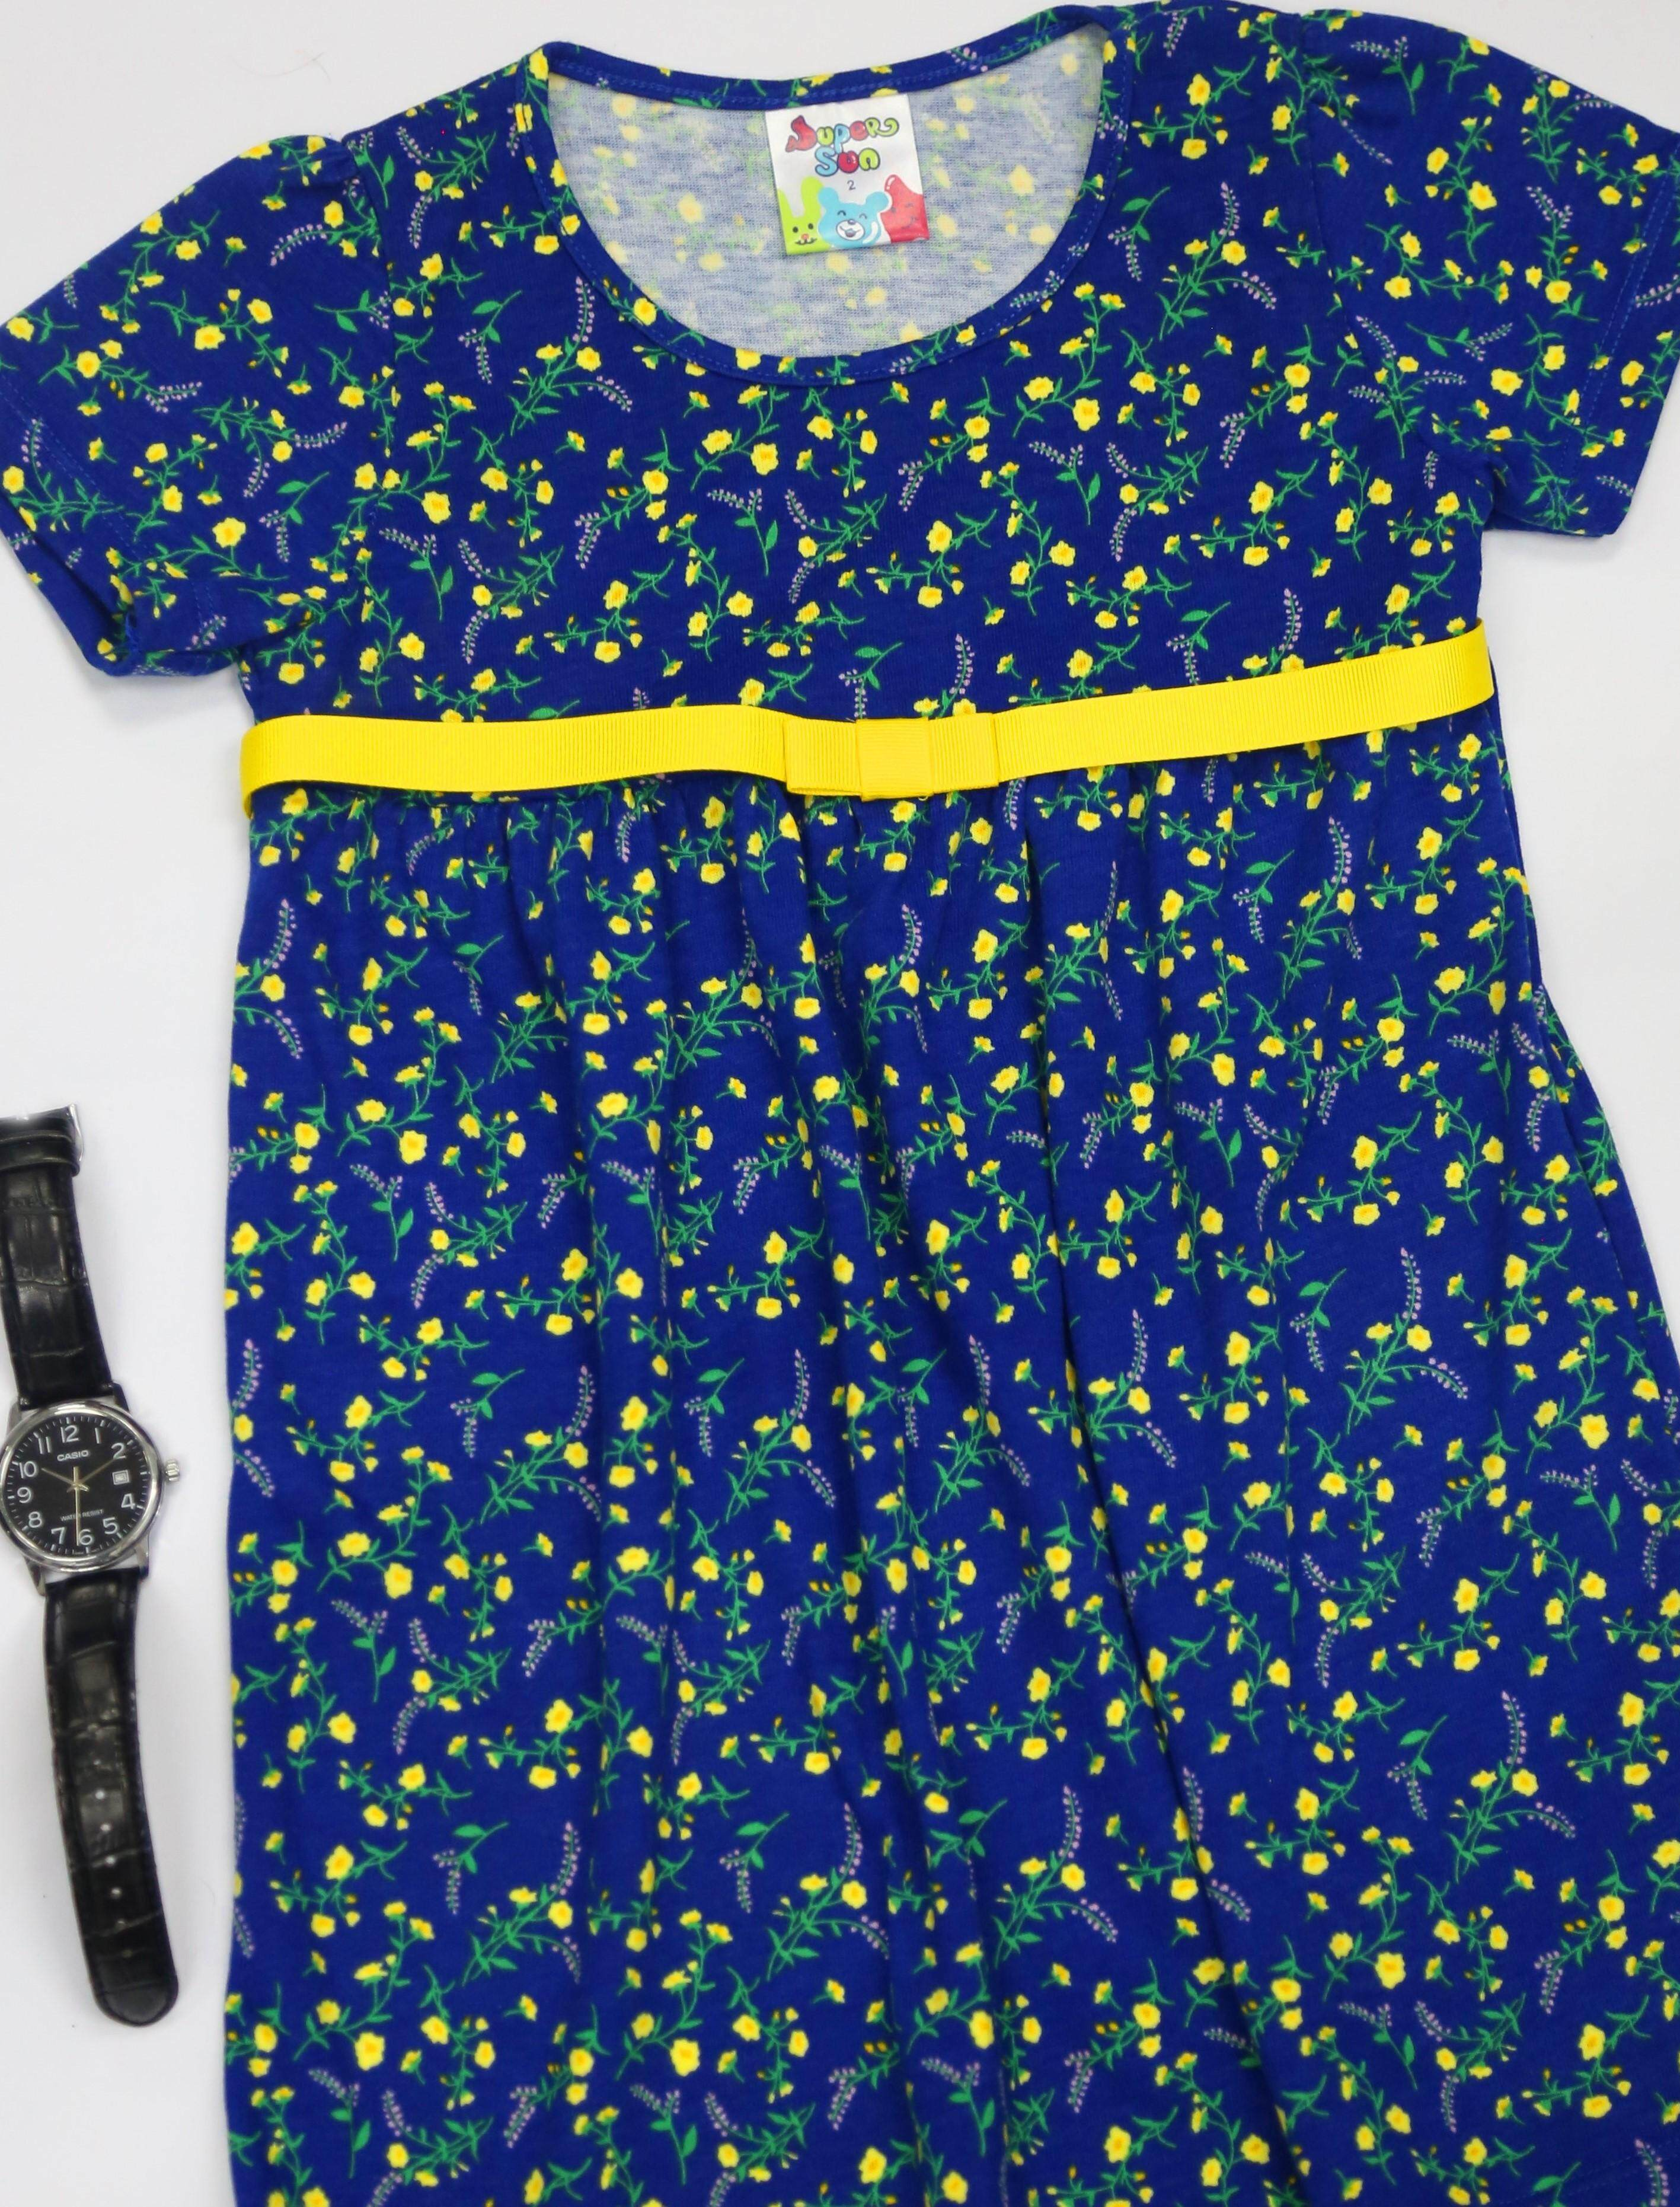 Supersun toddler Girl Dress Summer Fashion Clothes GD-29 Navy